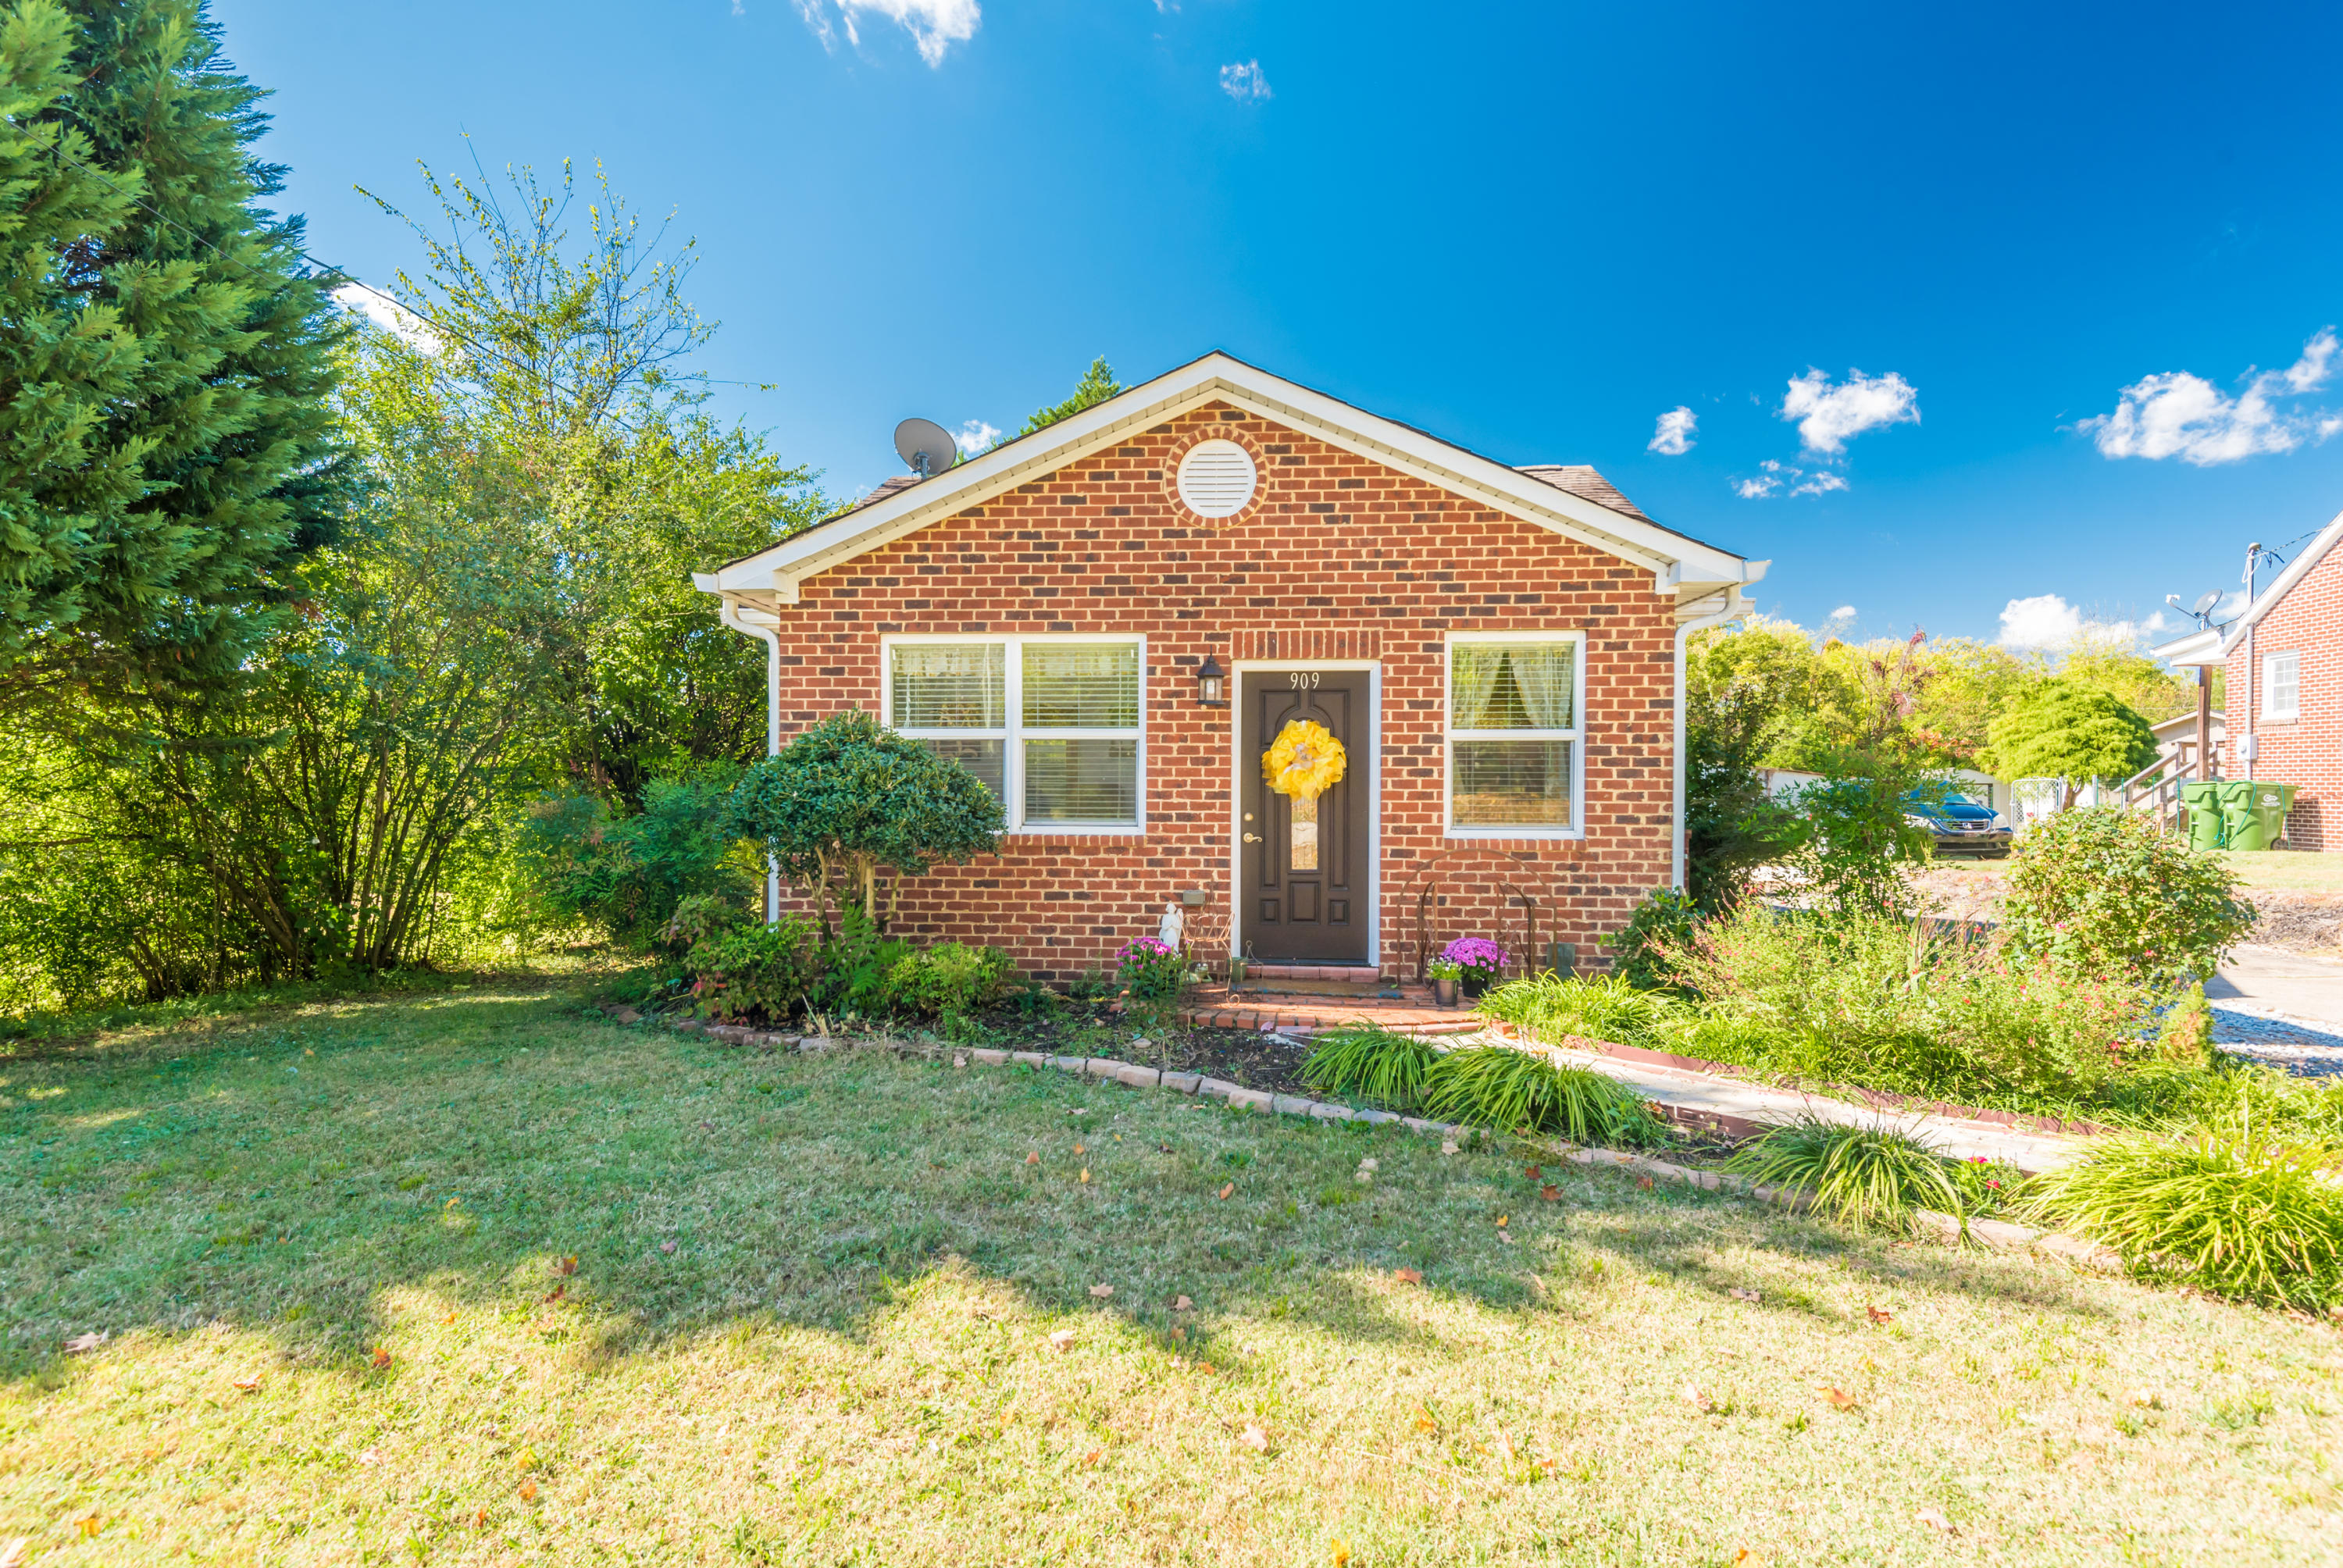 909 Montvale Rd, Maryville, Tennessee 37803, 3 Bedrooms Bedrooms, ,3 BathroomsBathrooms,Single Family,For Sale,Montvale,1098596